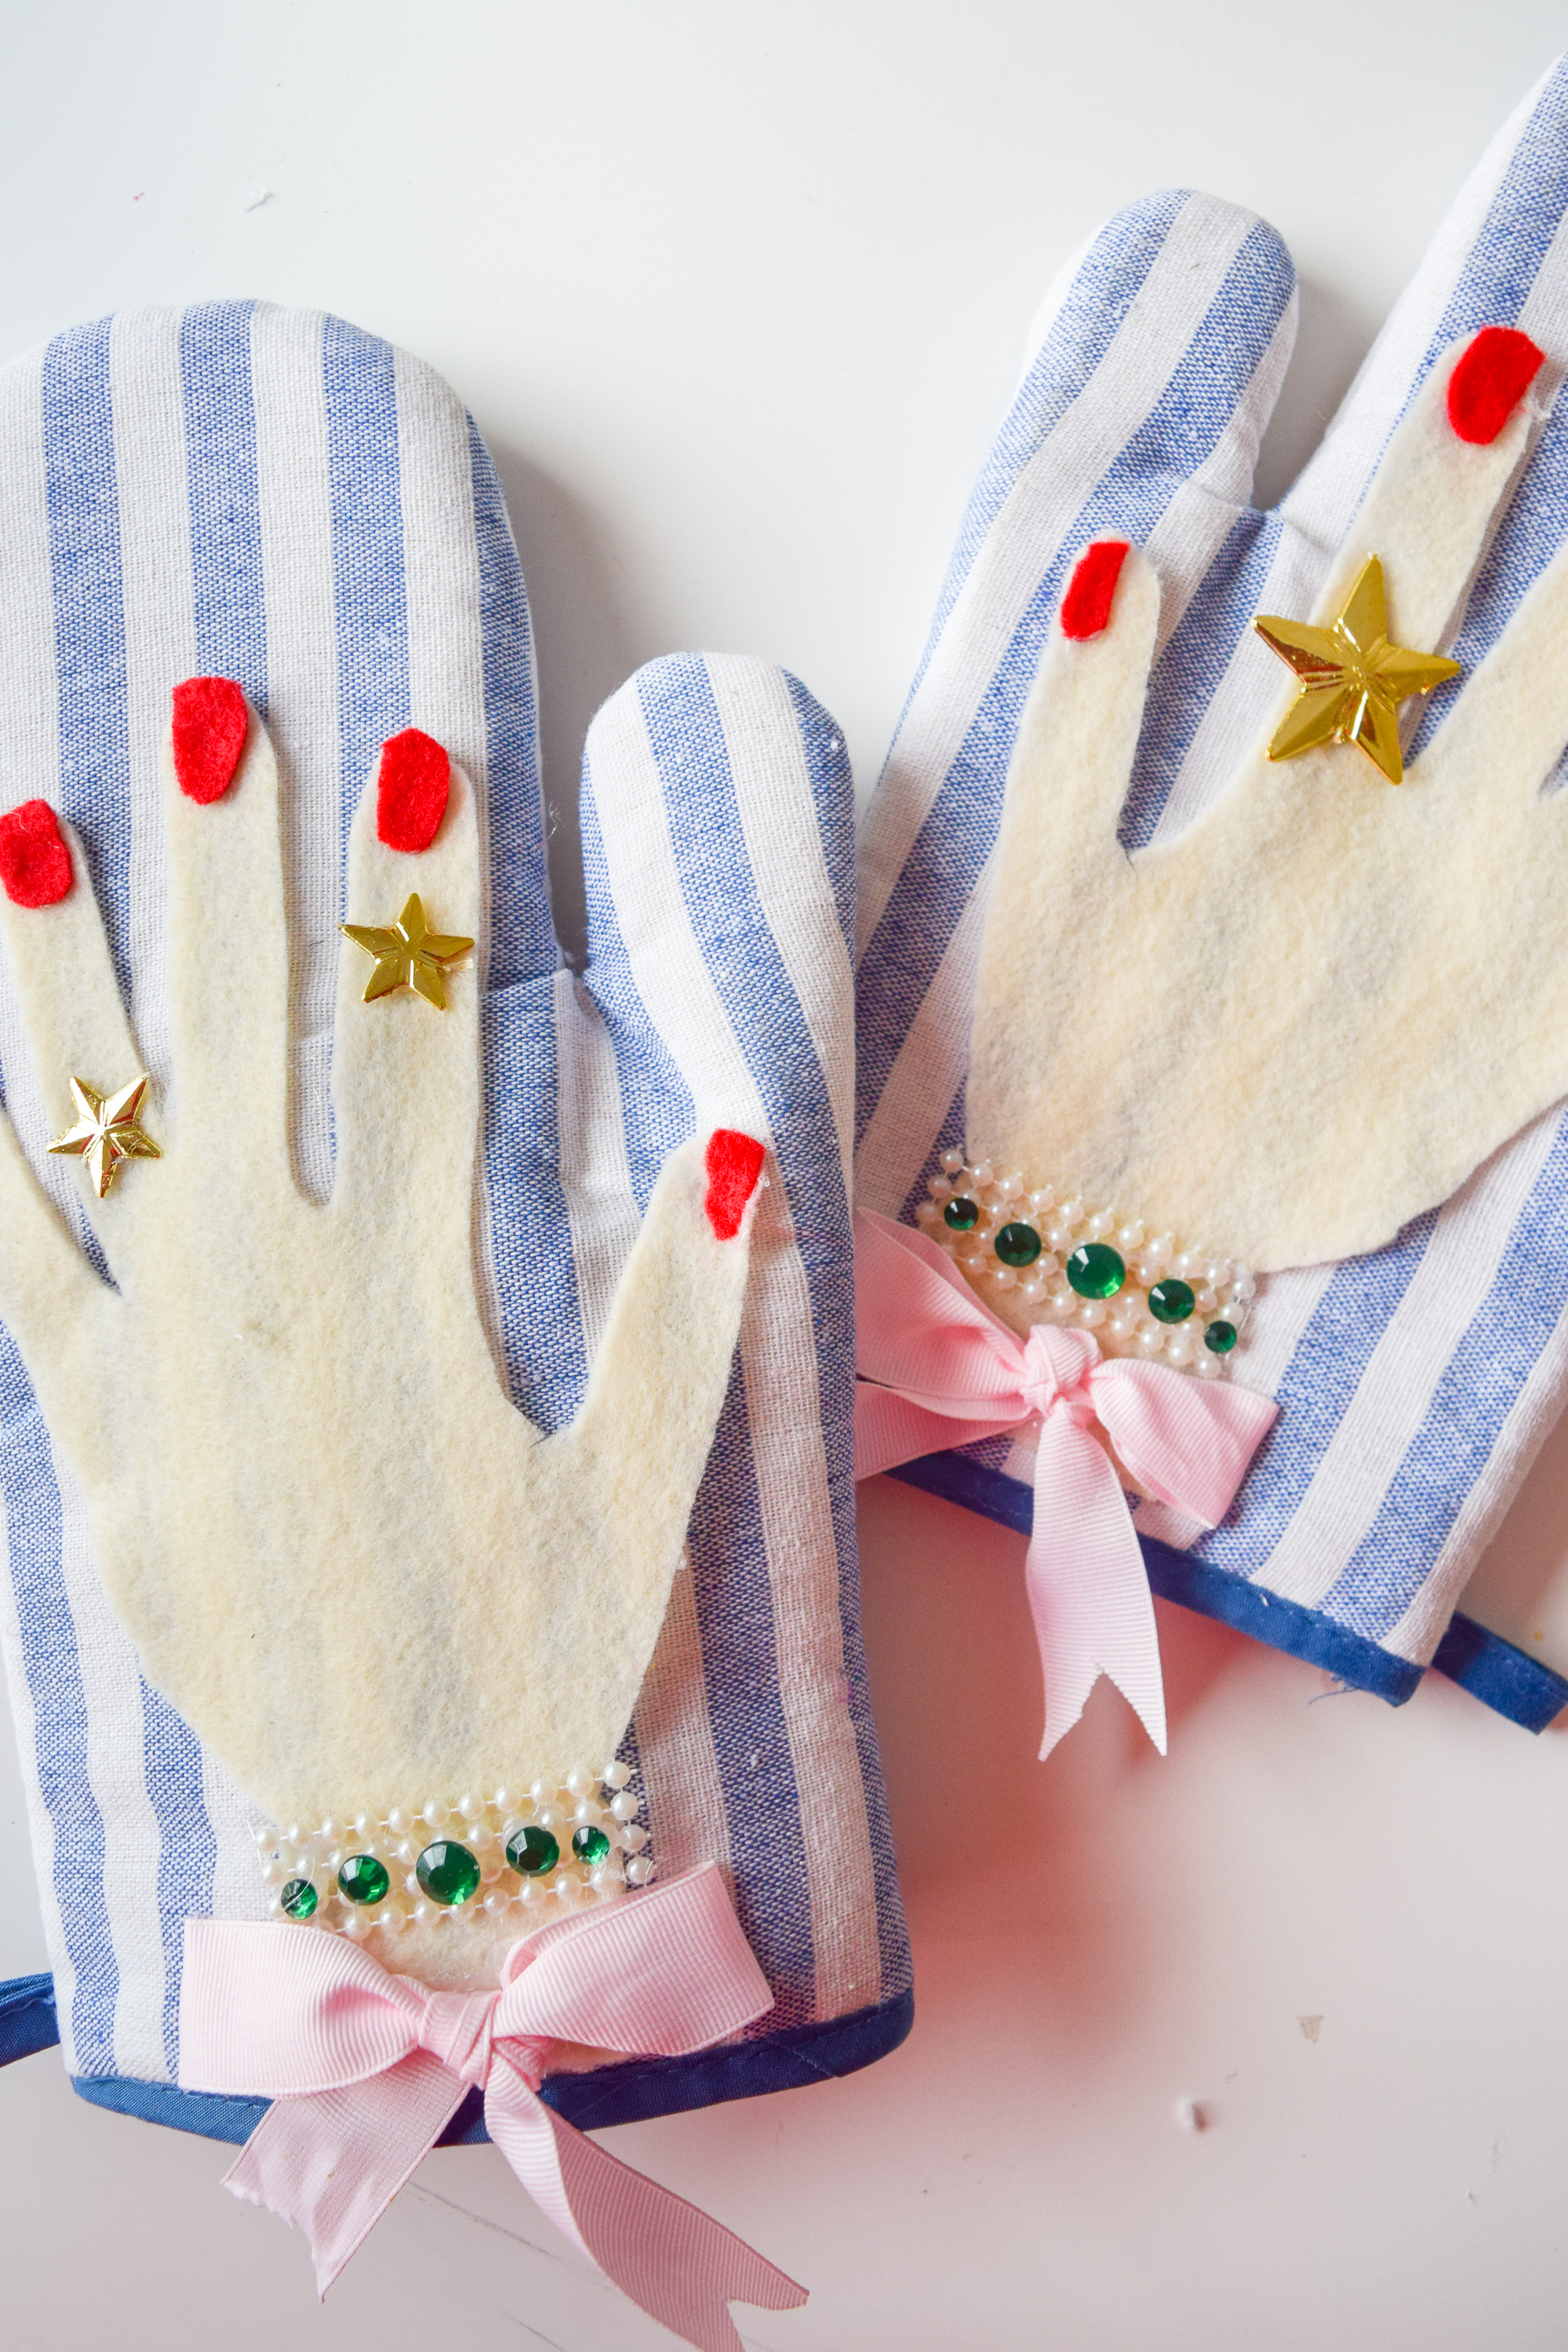 Bring a little razzle dazzle to your kitchen with these glamorous DIY Oven Mitts! They're #extra and all kinds of simple to make. Hop to!